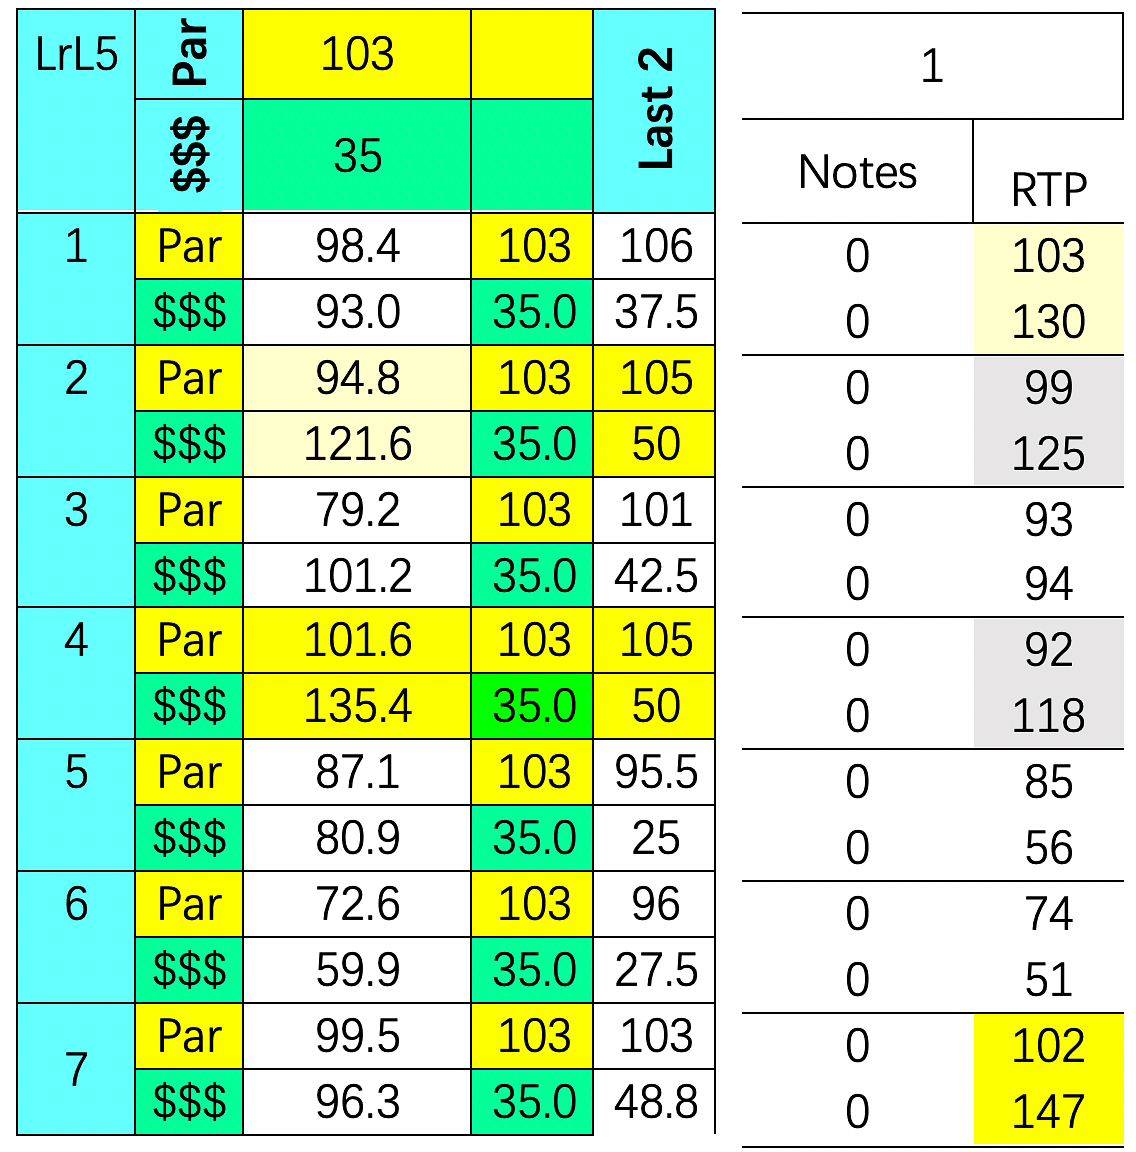 SmartCap analysis of the 5th at Laurel Park on 2/21/2020